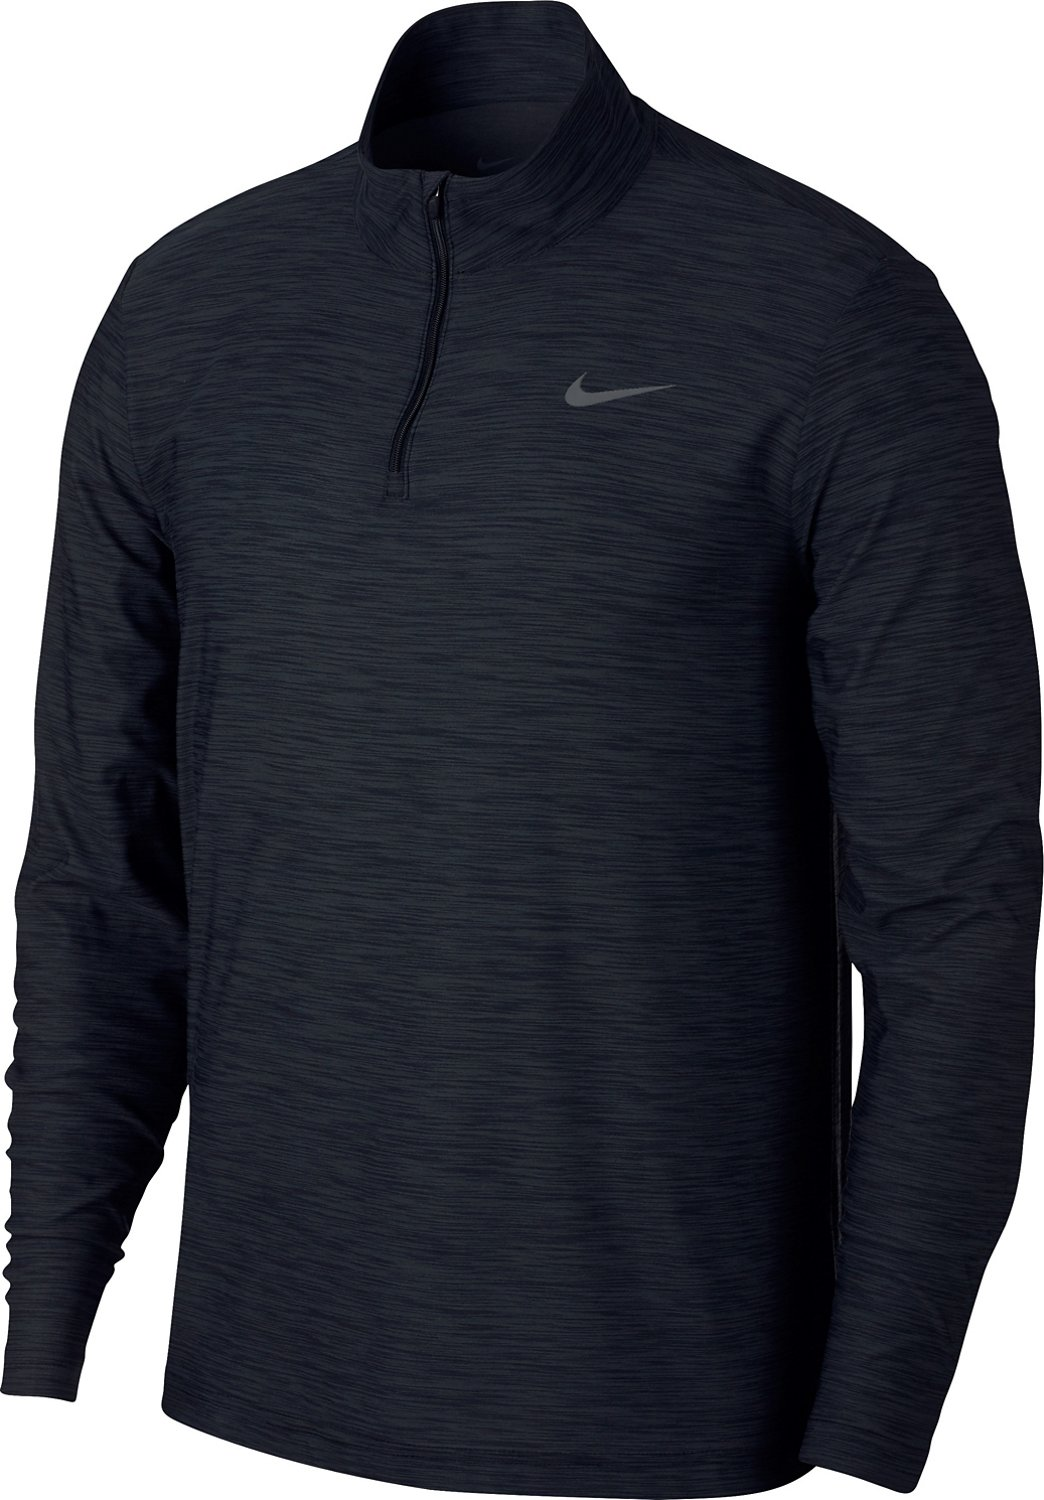 Nike Men's Breathe Dry Quarter Zip Long Sleeve Shirt (Black/Anthracite-Dark Grey